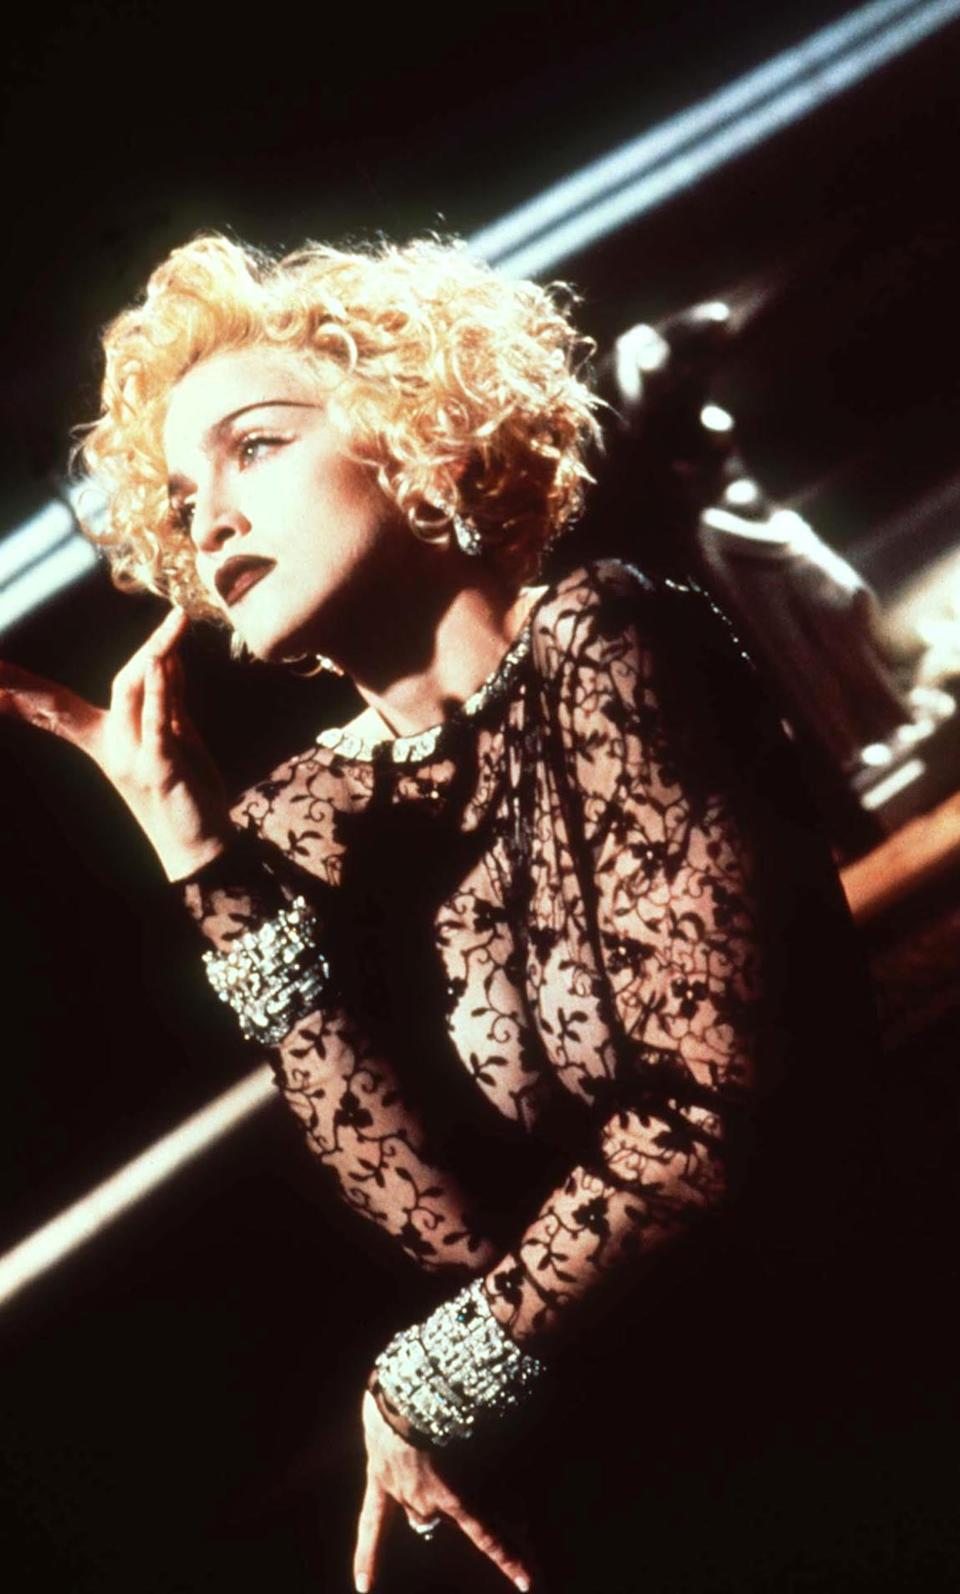 <p>Madonna on the set of her 'Vogue' musical video in 1990</p>Rex/Shutterstock